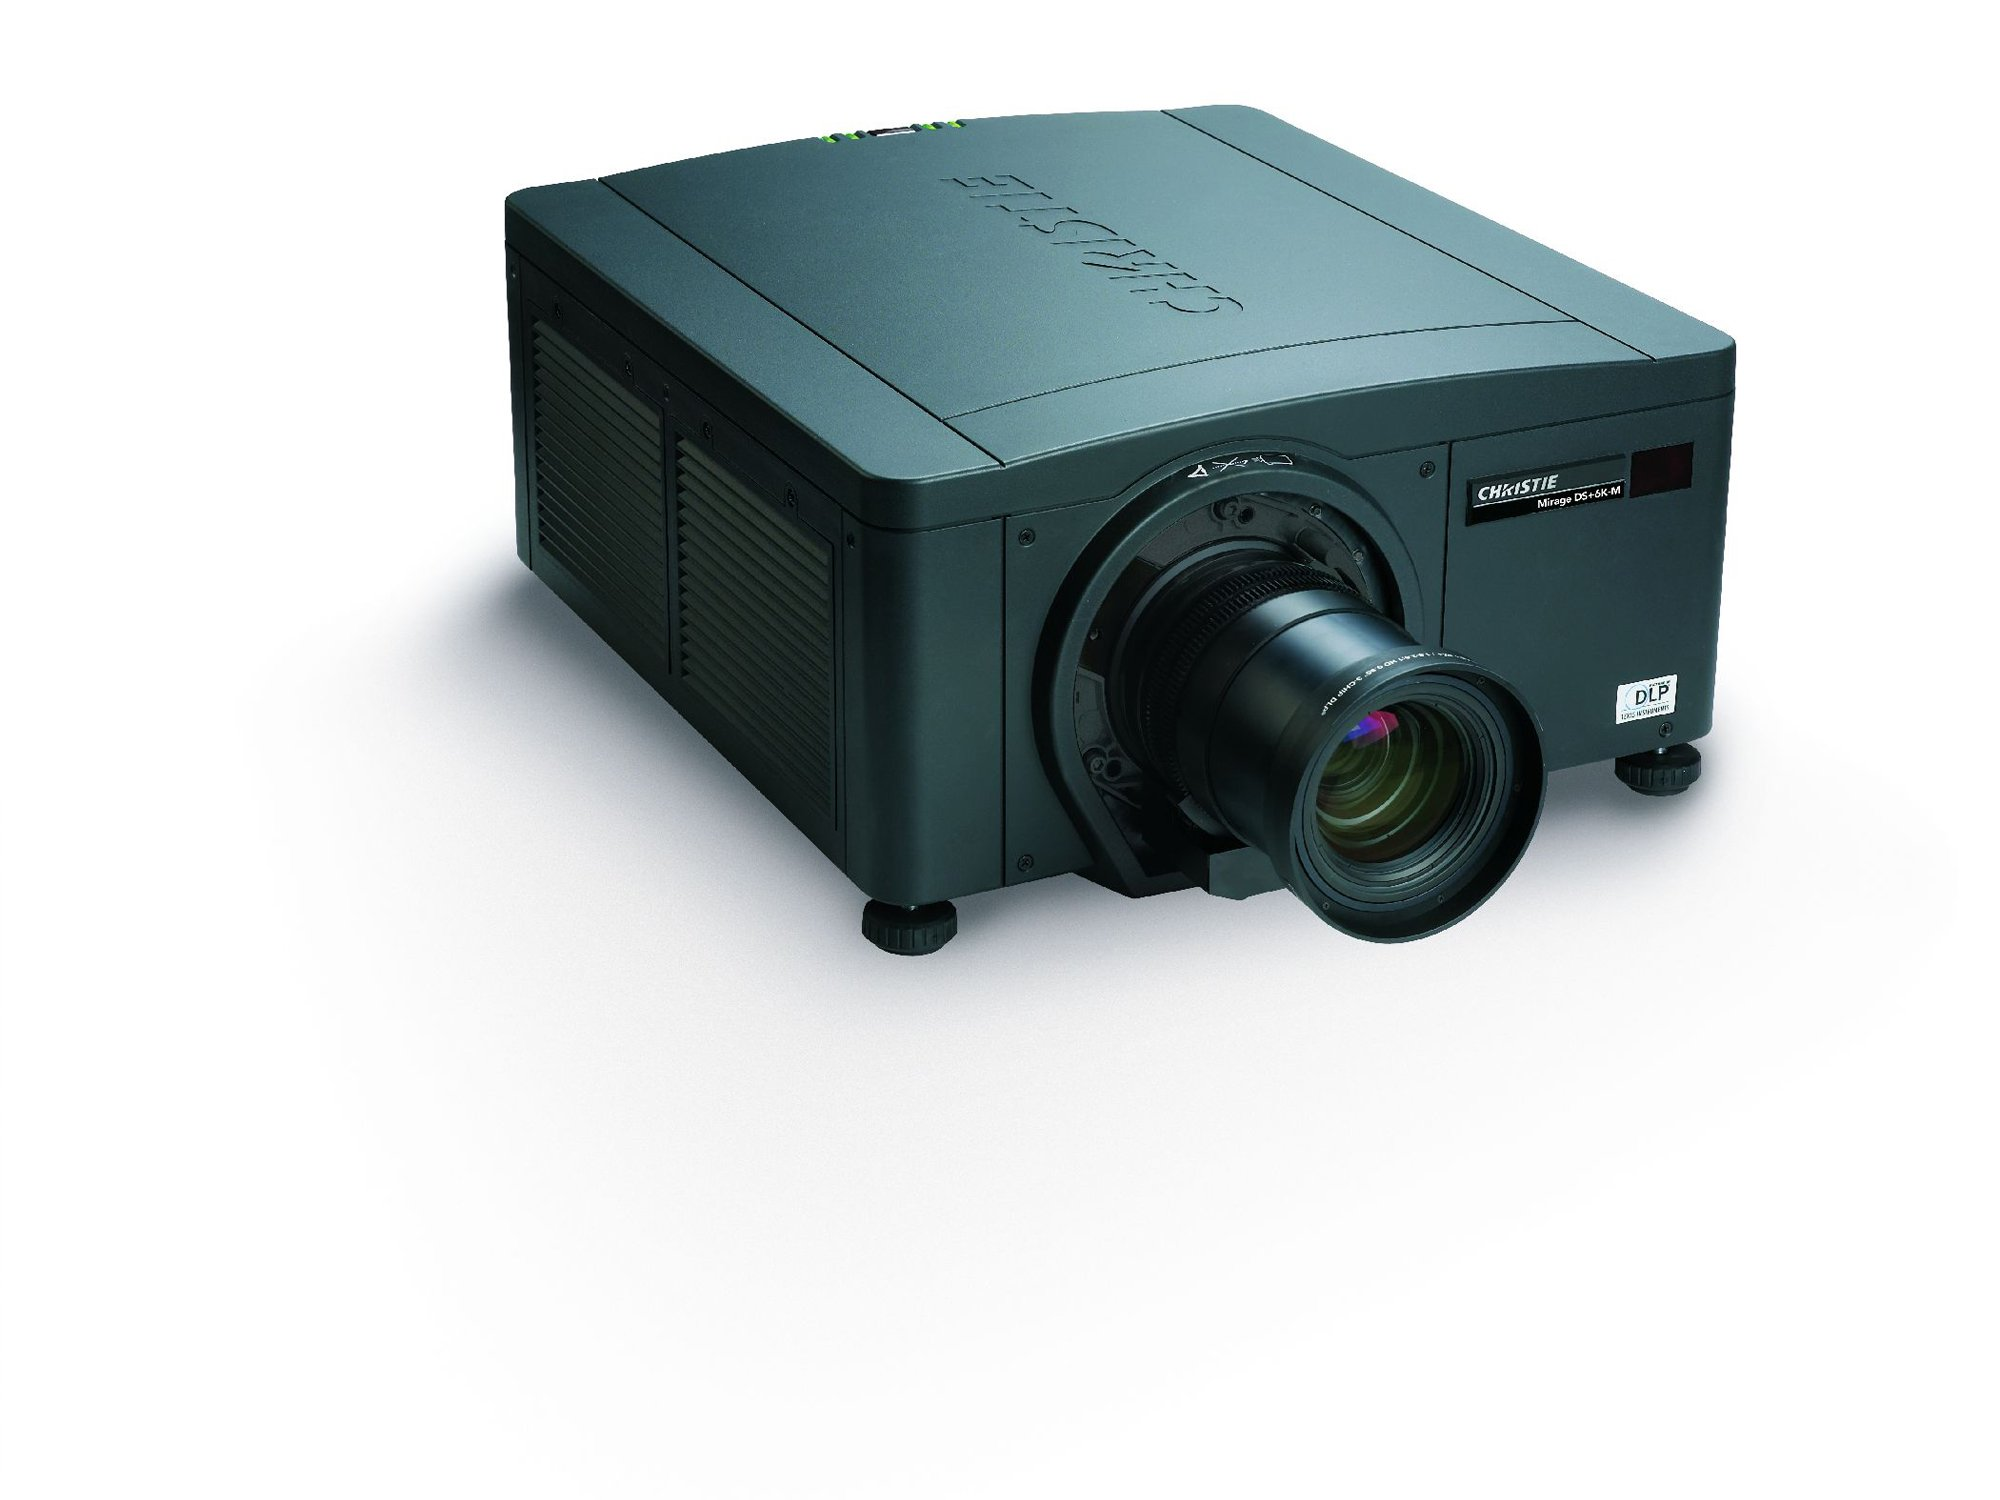 /globalassets/.catalog/products/images/mirage-ds6k-m/gallery/mirage-ds6k-m-digital-projector-highleftpr.jpg